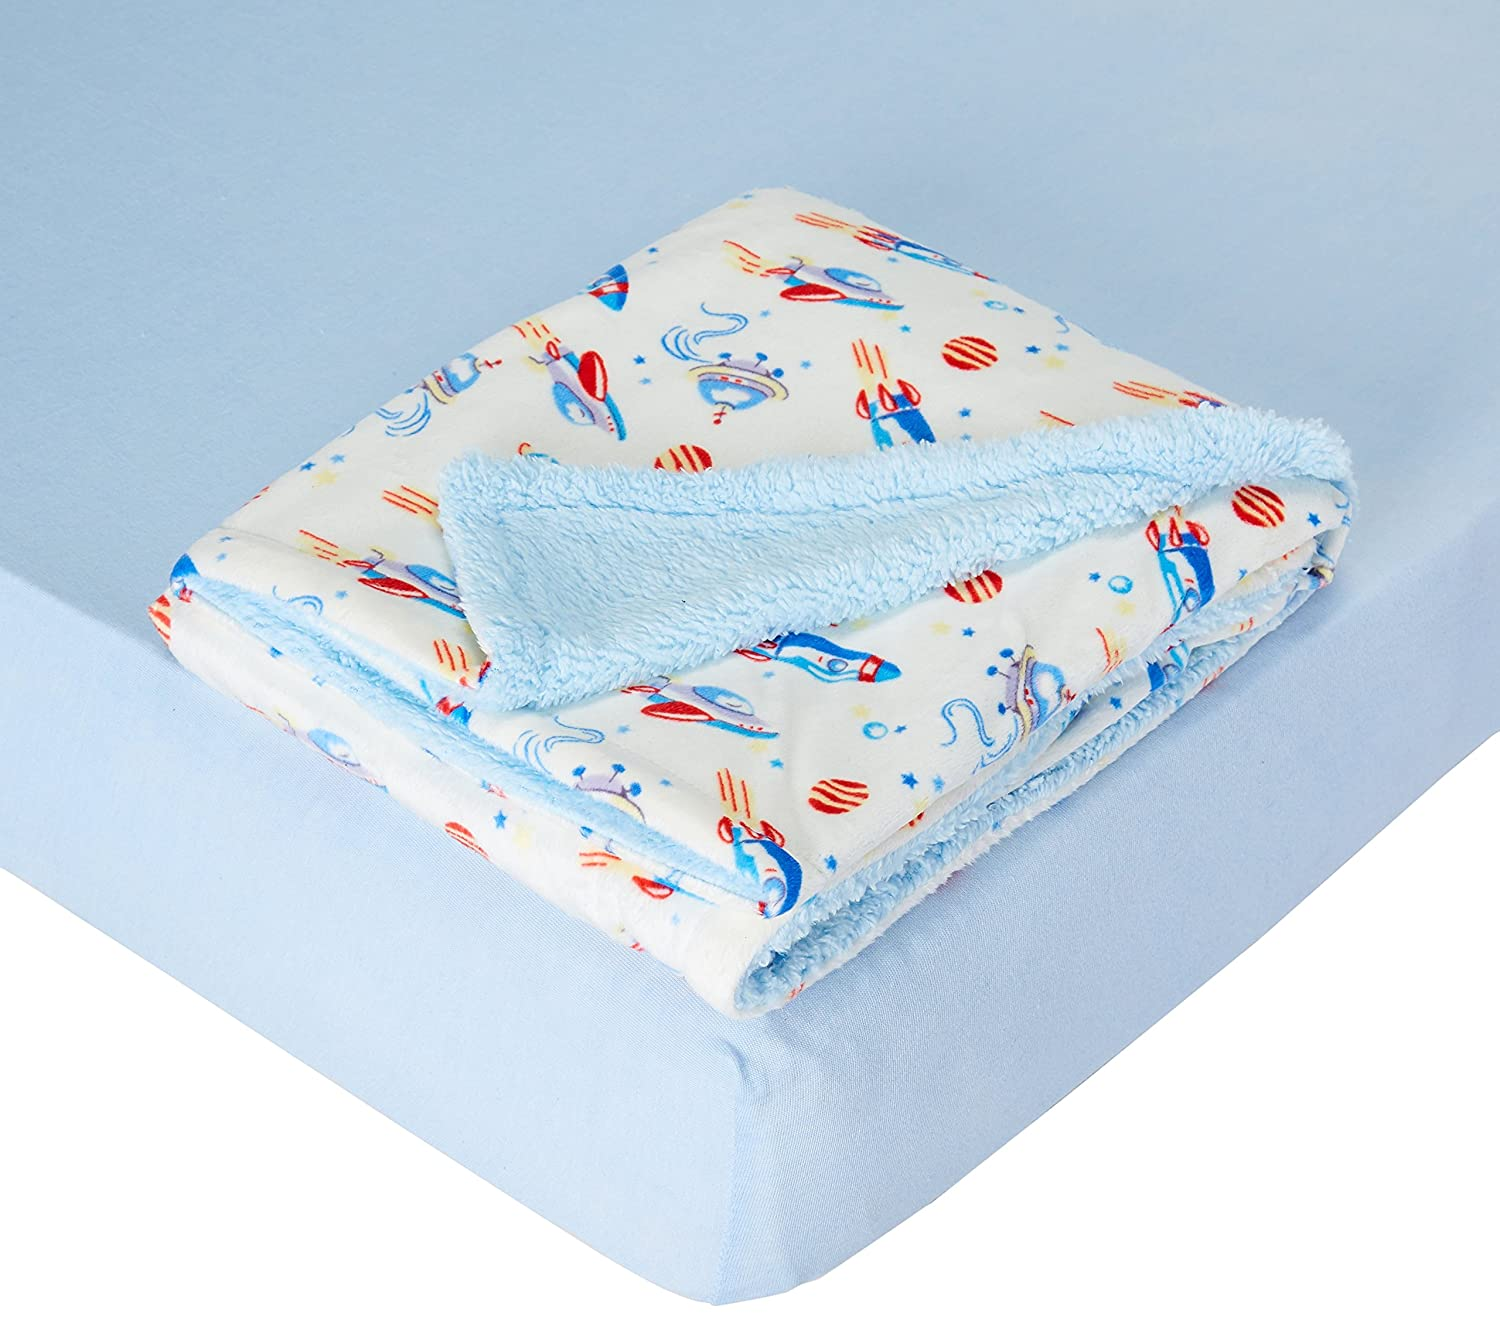 My Baby Toddler Boys Rockets Printed Mink Reversed Coral Fleece Blanket With Cotton Sheet Bedding Set Blue  Rockets Blue/Blue B074SZ3K29